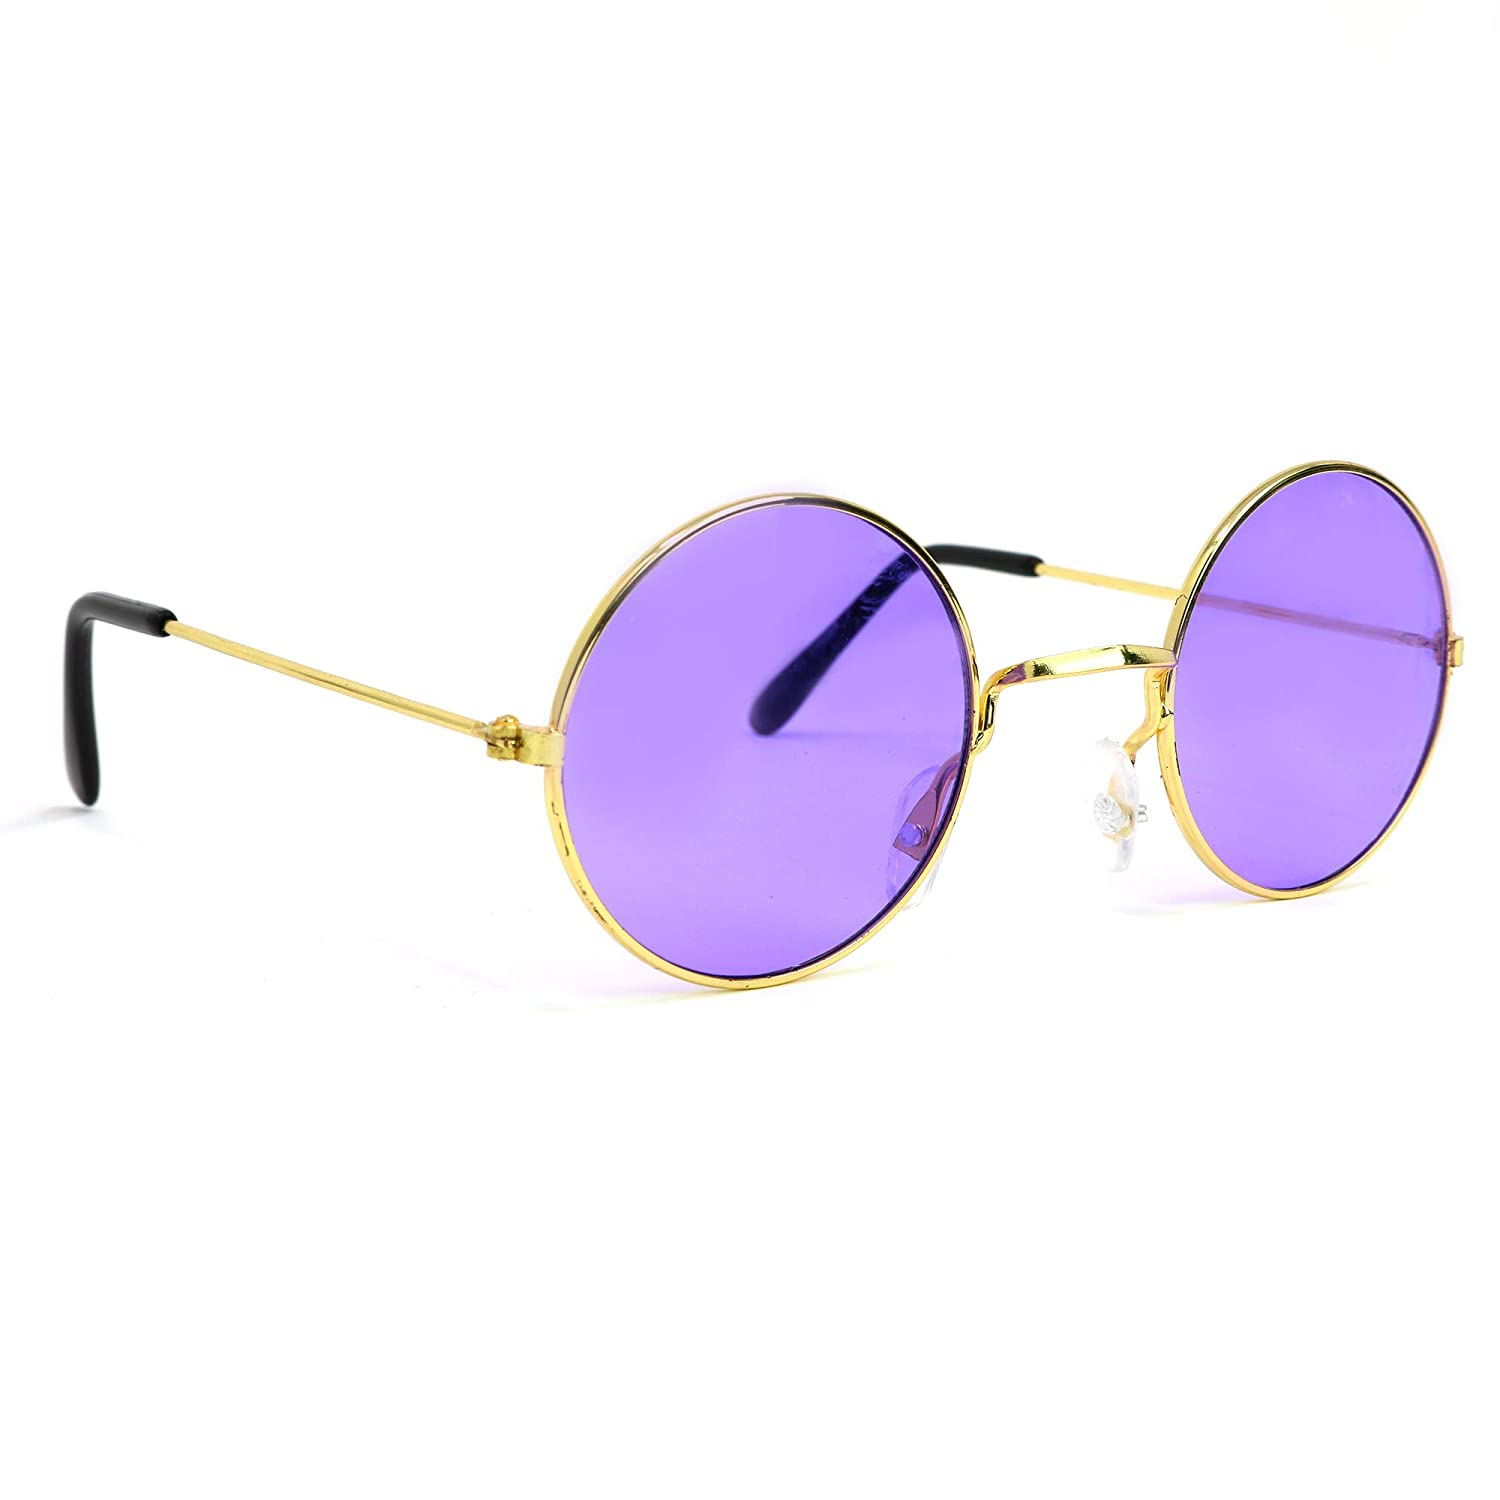 28d7117bd7f Wholesale Price 5.99. Skeleteen Hippy Style Sixties Seventies Round Shades  imitates the fashion of the time making it a perfect costume accessory.